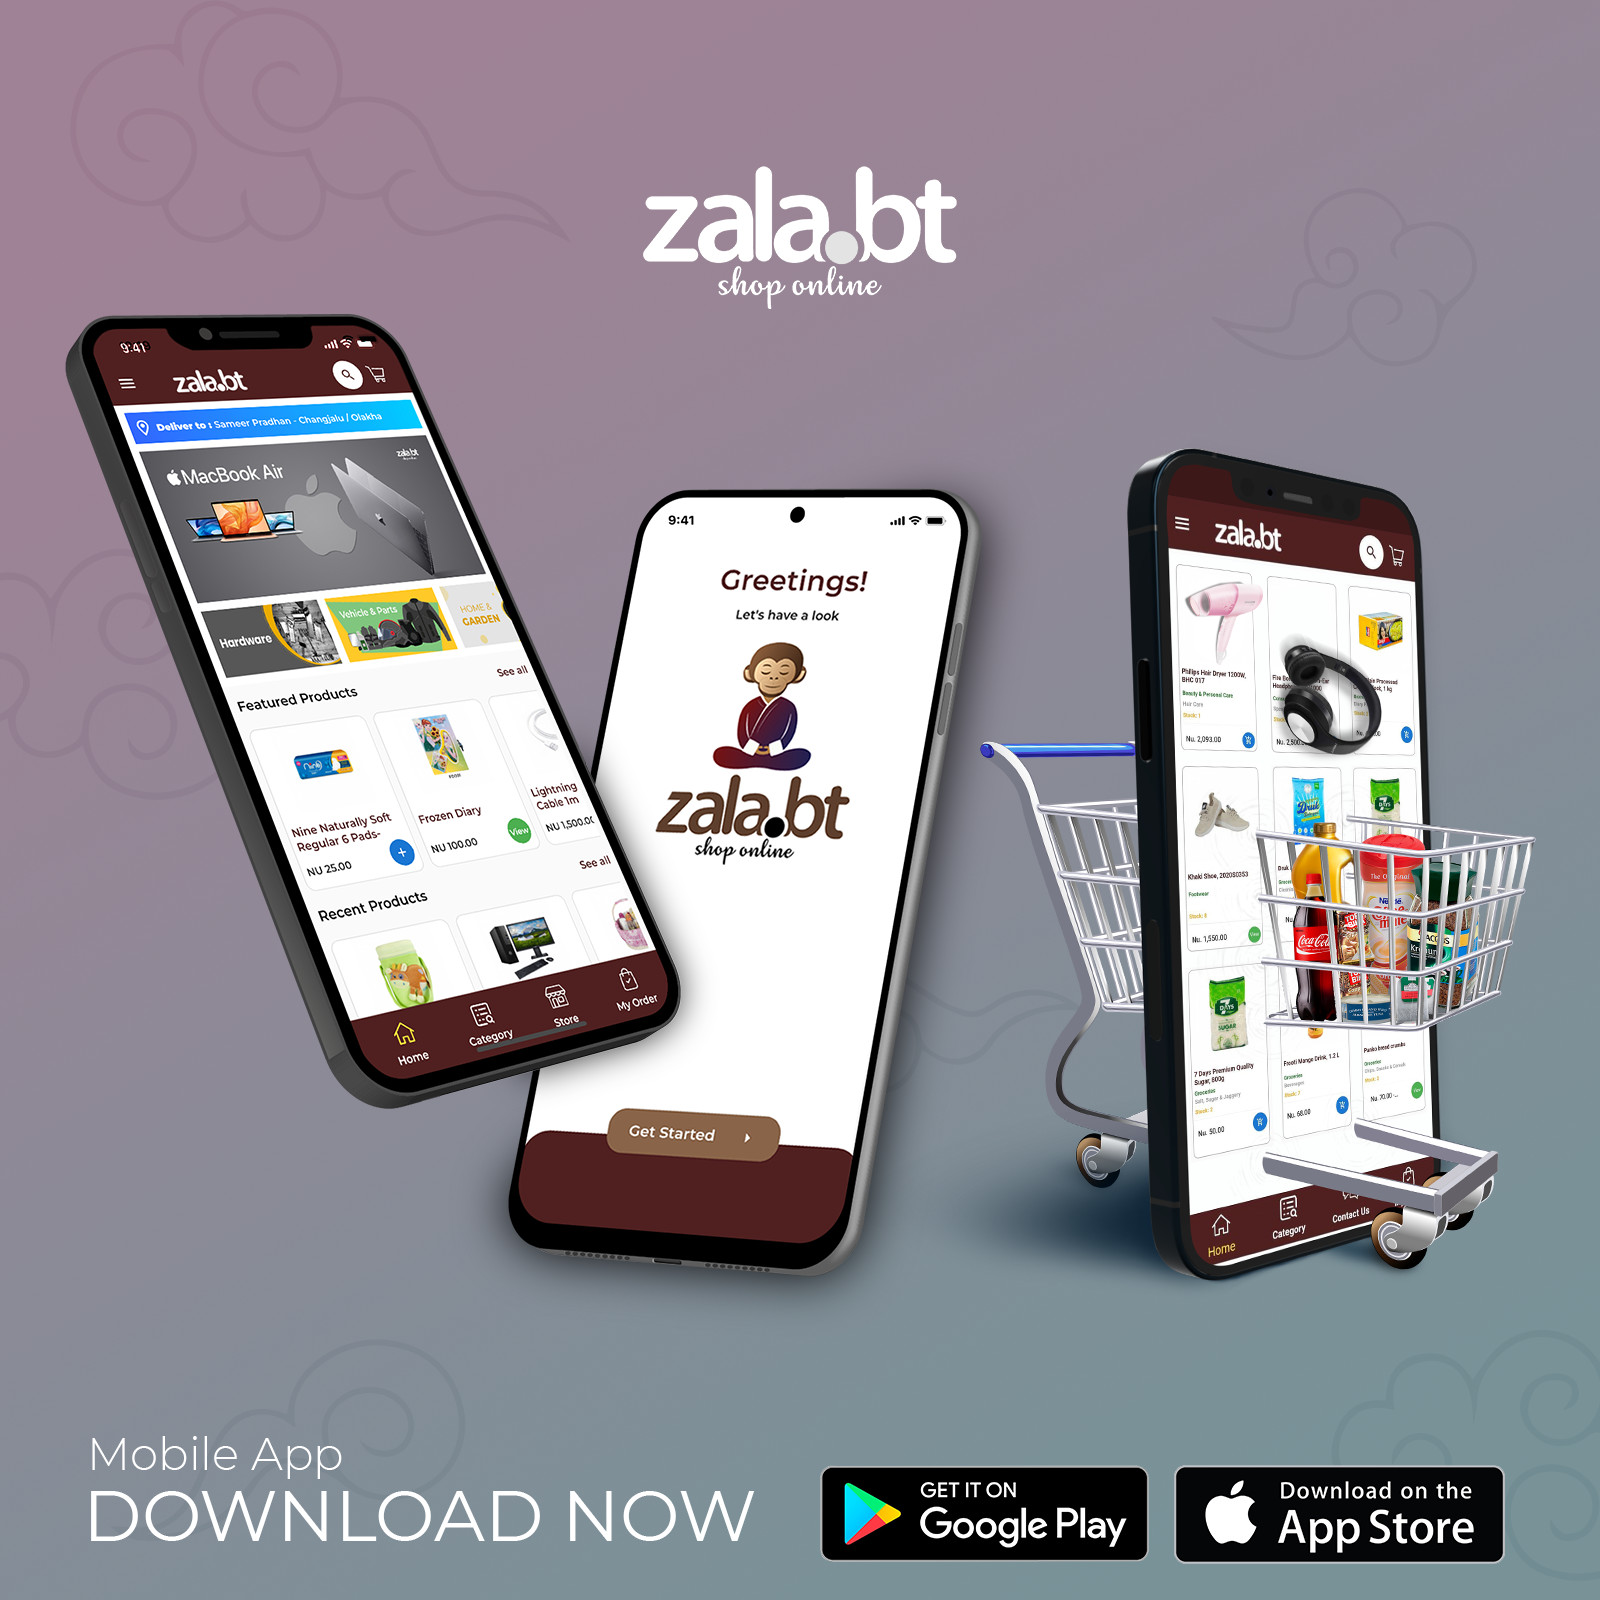 Download the zala.bt mobile app now!